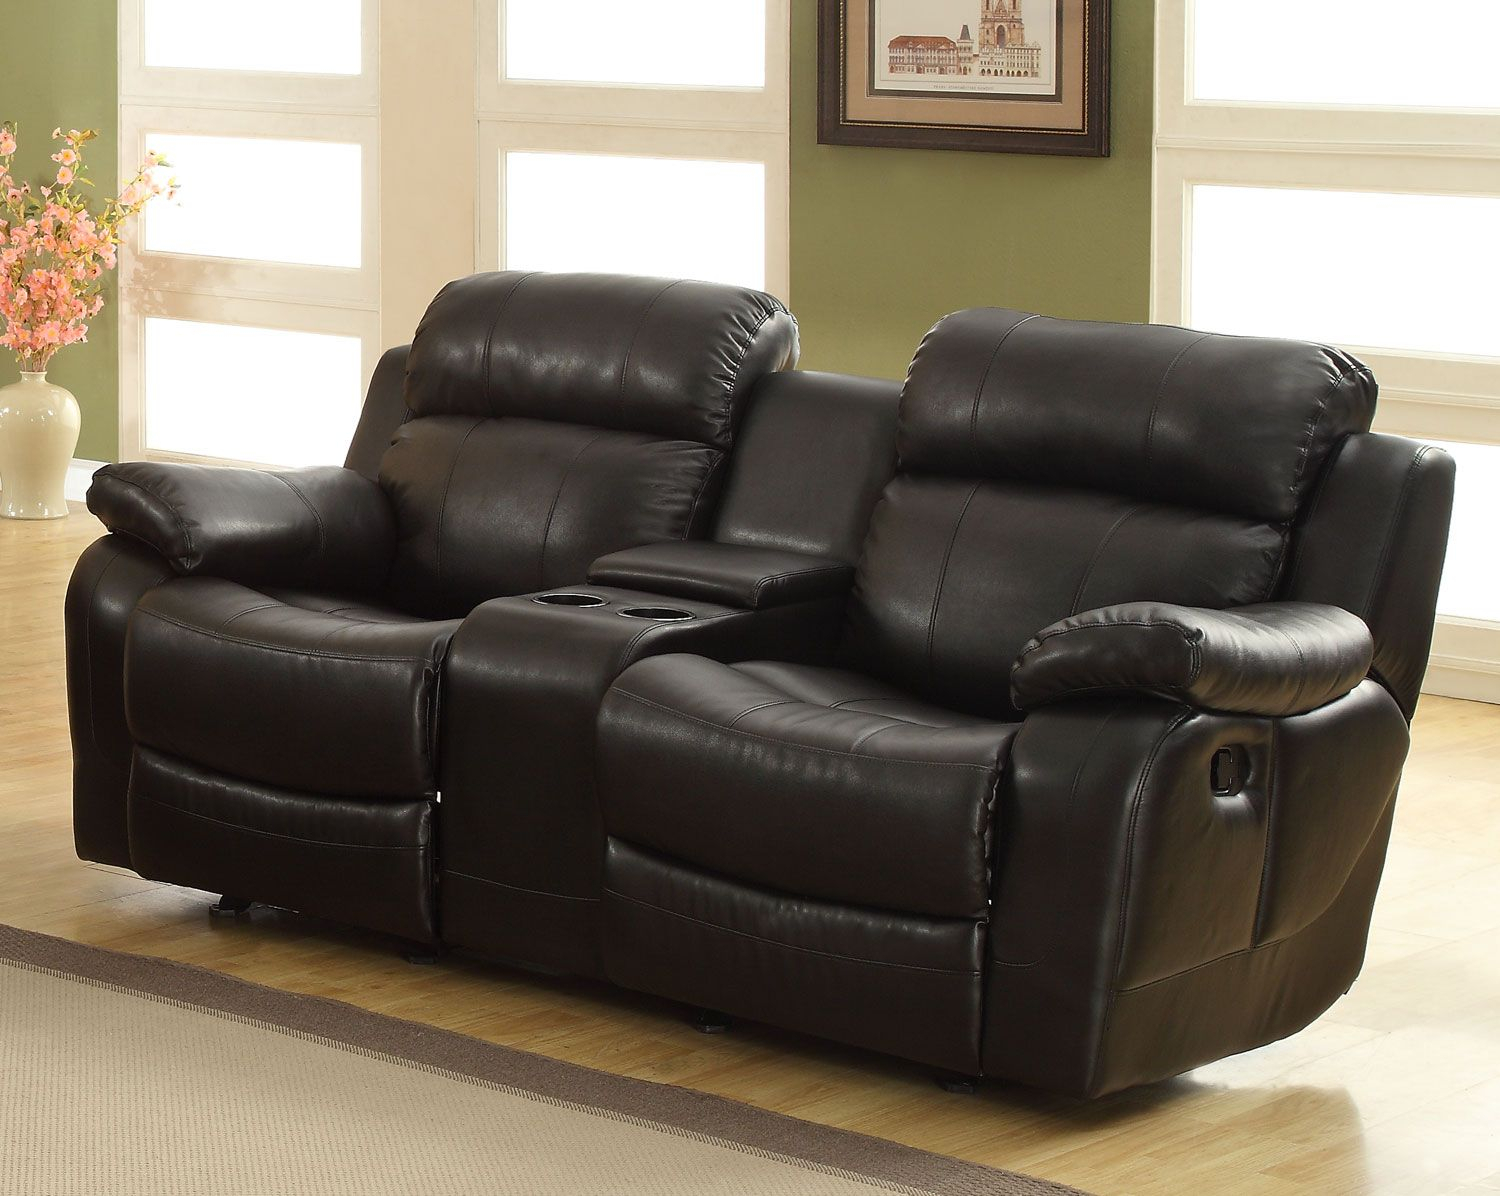 Homelegance Marille Love Seat Glider Recliner With Center With Regard To Double Glider Loveseats (Image 13 of 25)